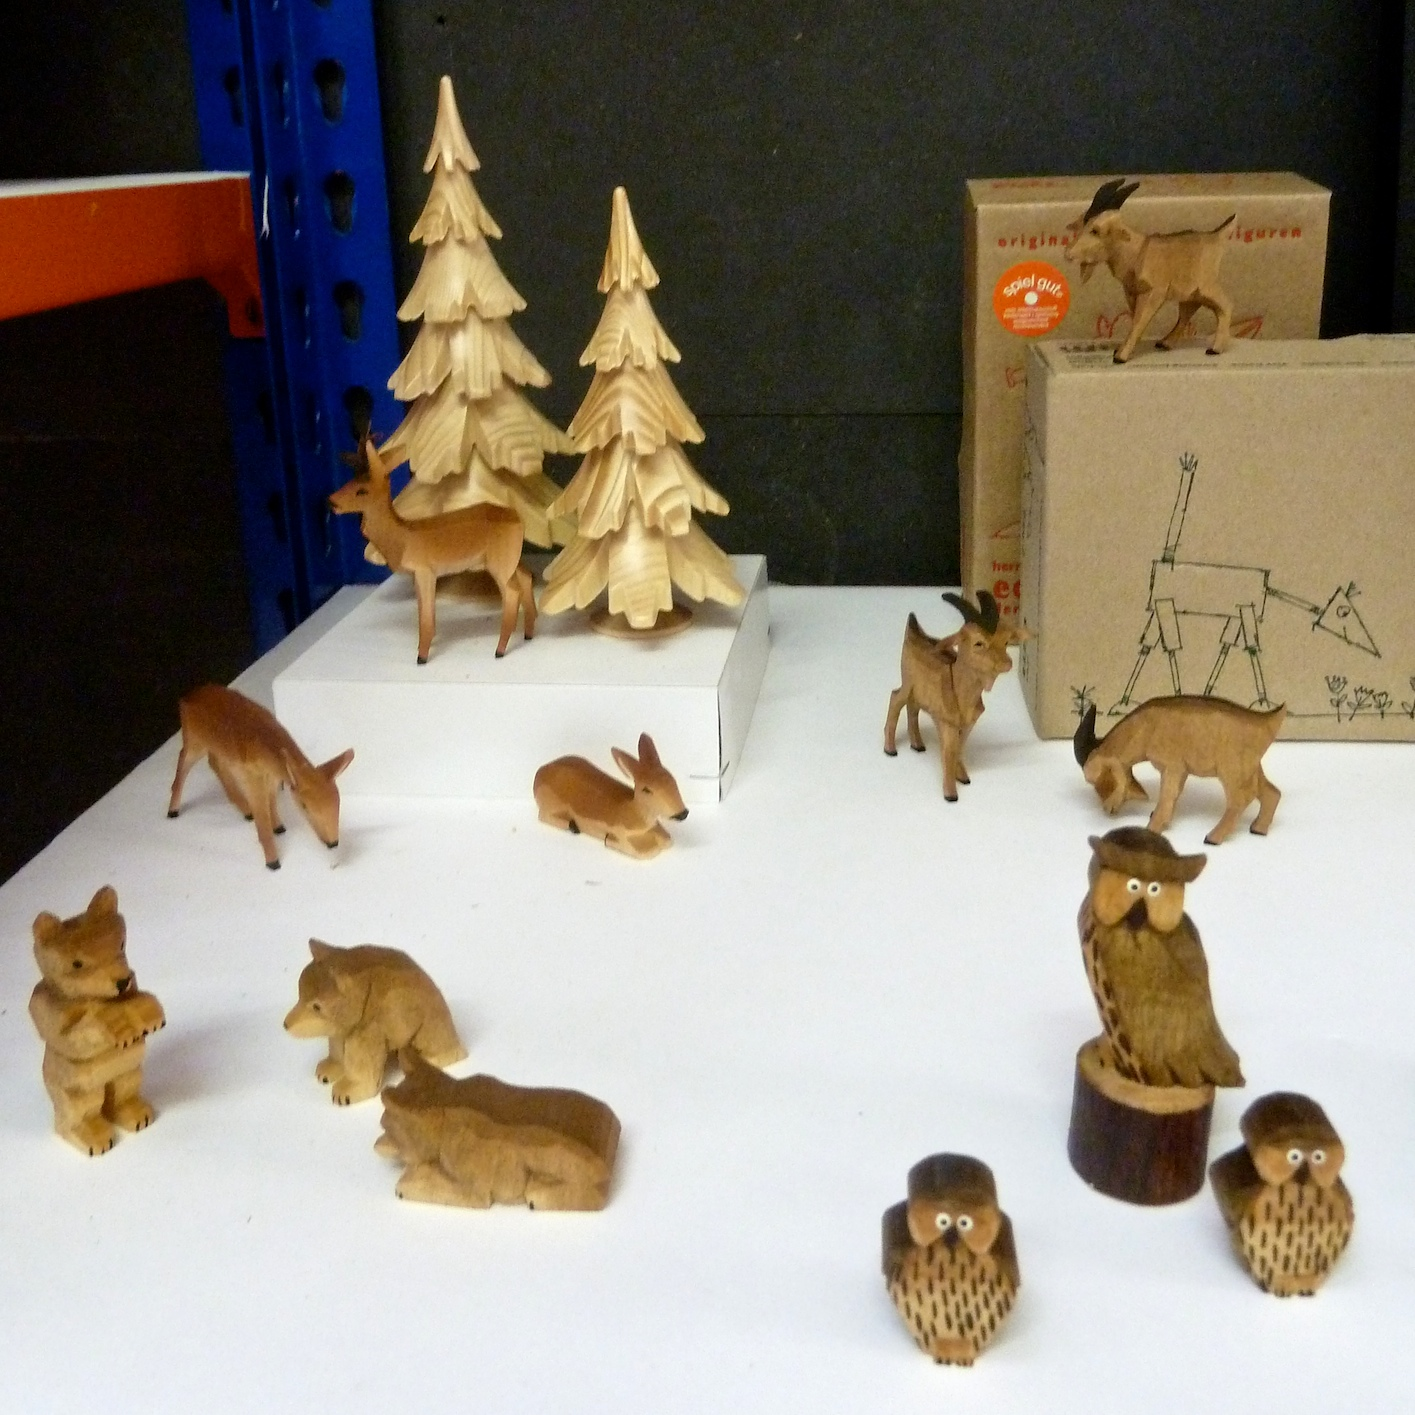 Sweet little woodland creatures by Erzgebirge from Germany at Theo online store